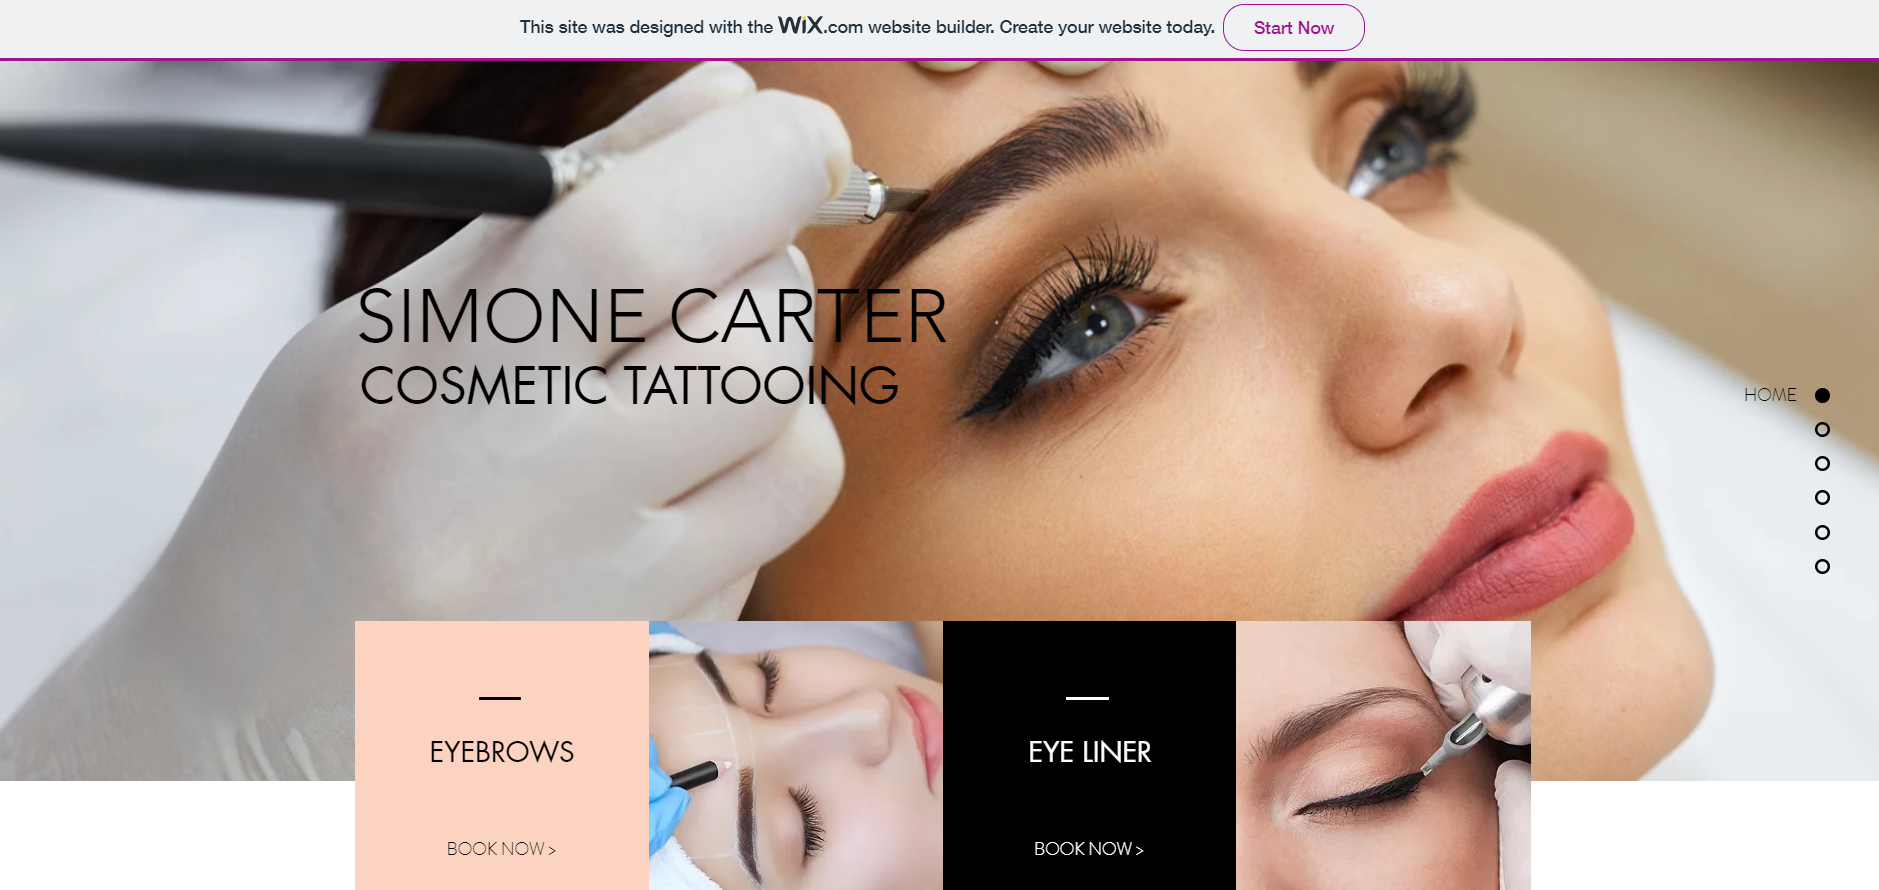 Simone Carter Cosmetic Tattooing